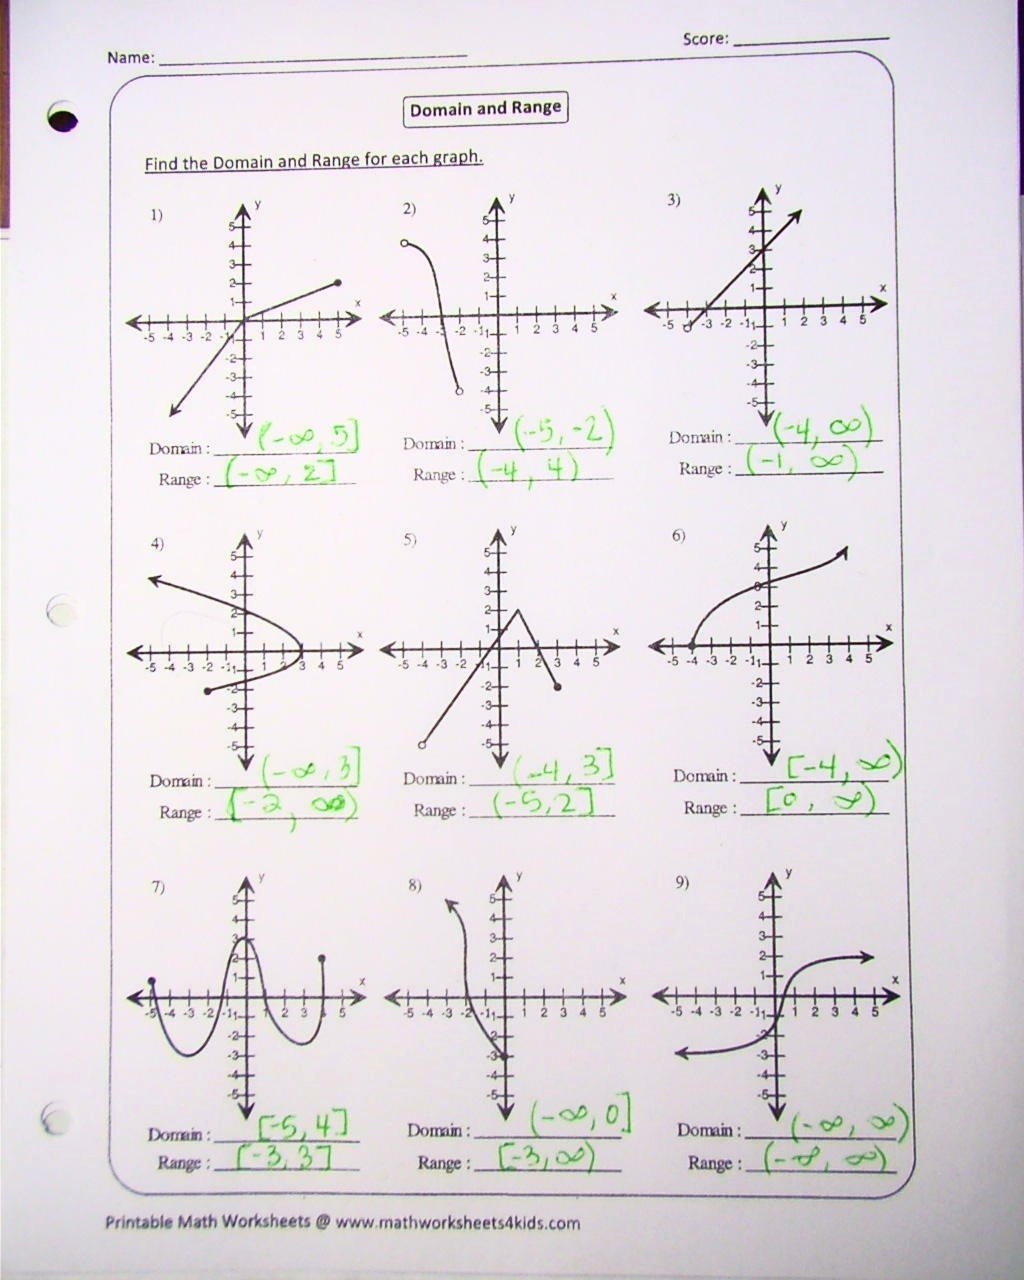 Domain and Range Practice Worksheet Luxury Honors Precalc